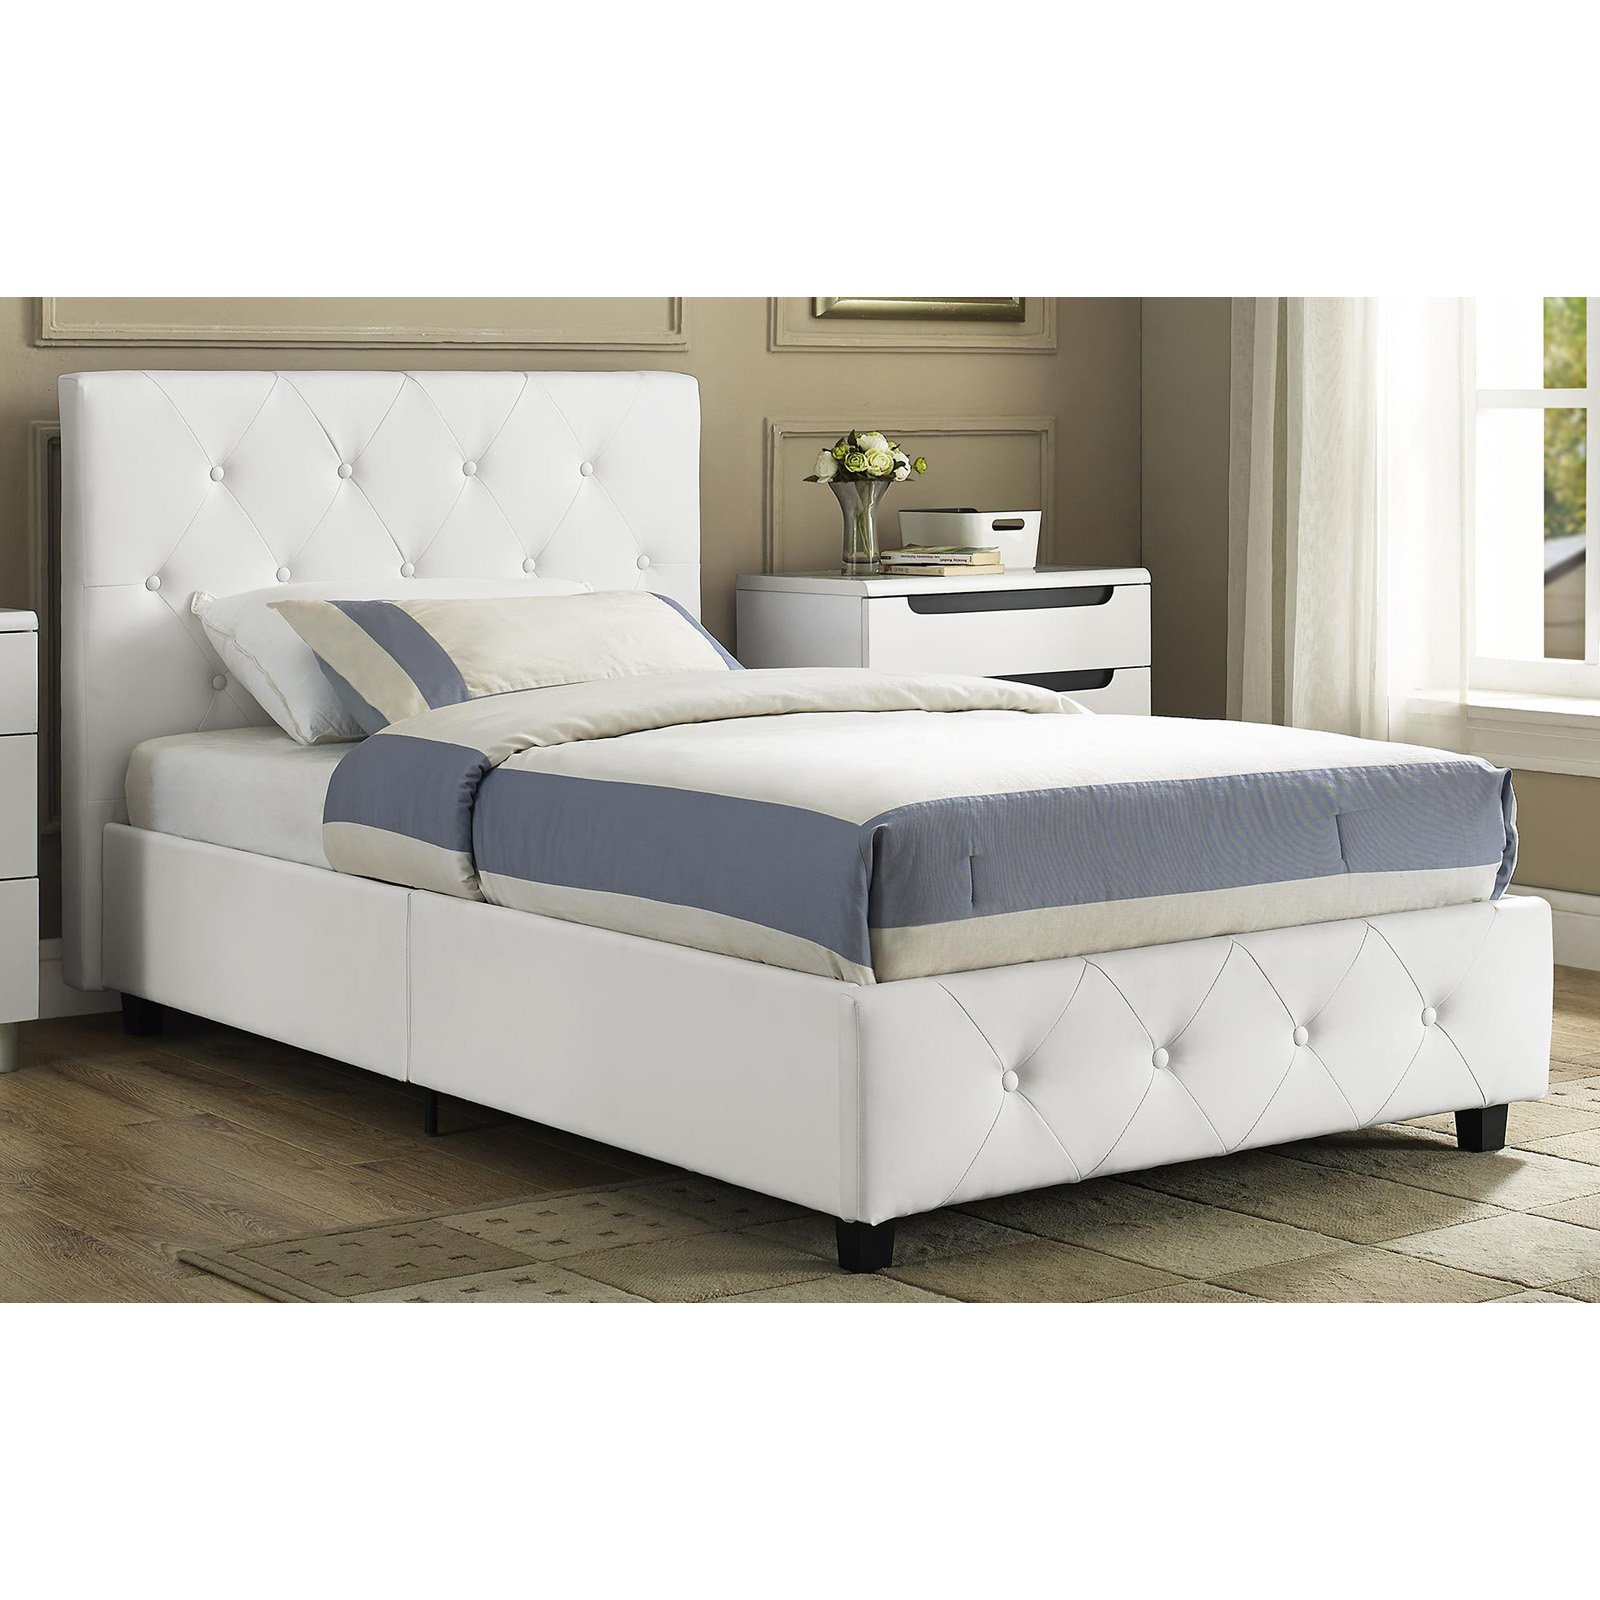 Wonderful Leather Twin Bed Part - 6: DHP Dakota Faux Leather Upholstered, Multiple Colors, Multiple Sizes -  Walmart.com